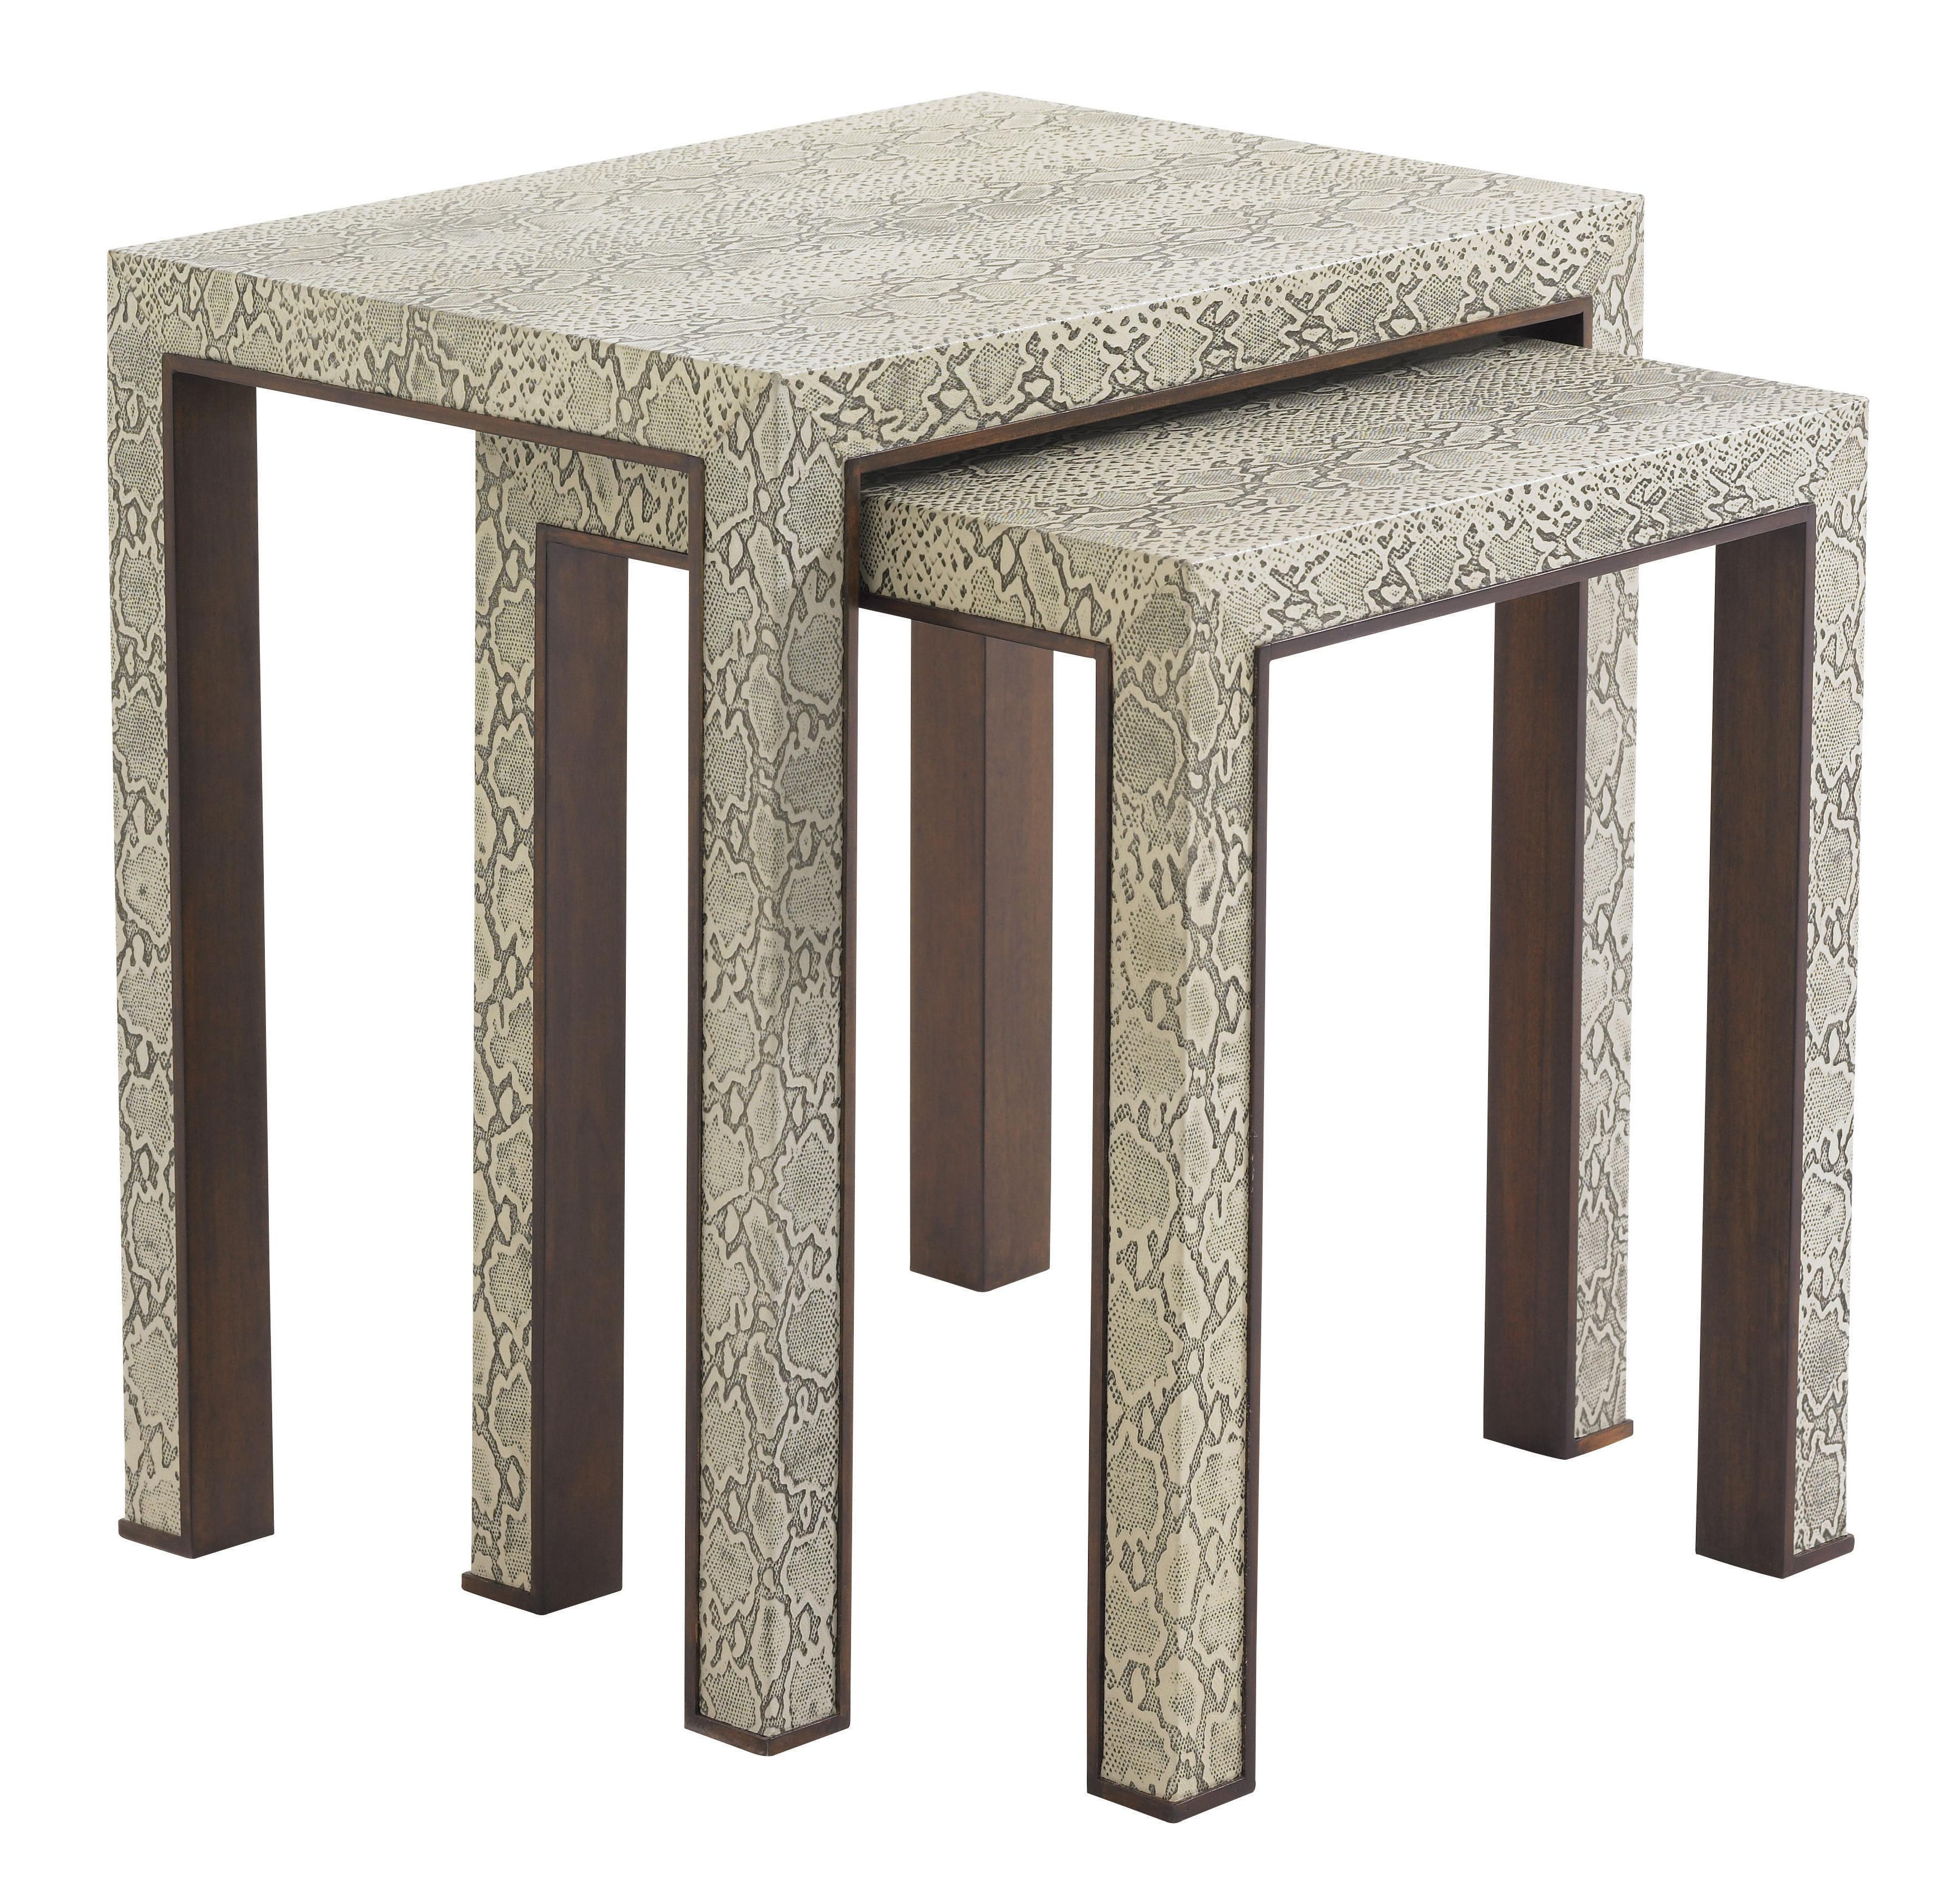 Tower Place Adler Nesting Tables by Lexington at Johnny Janosik